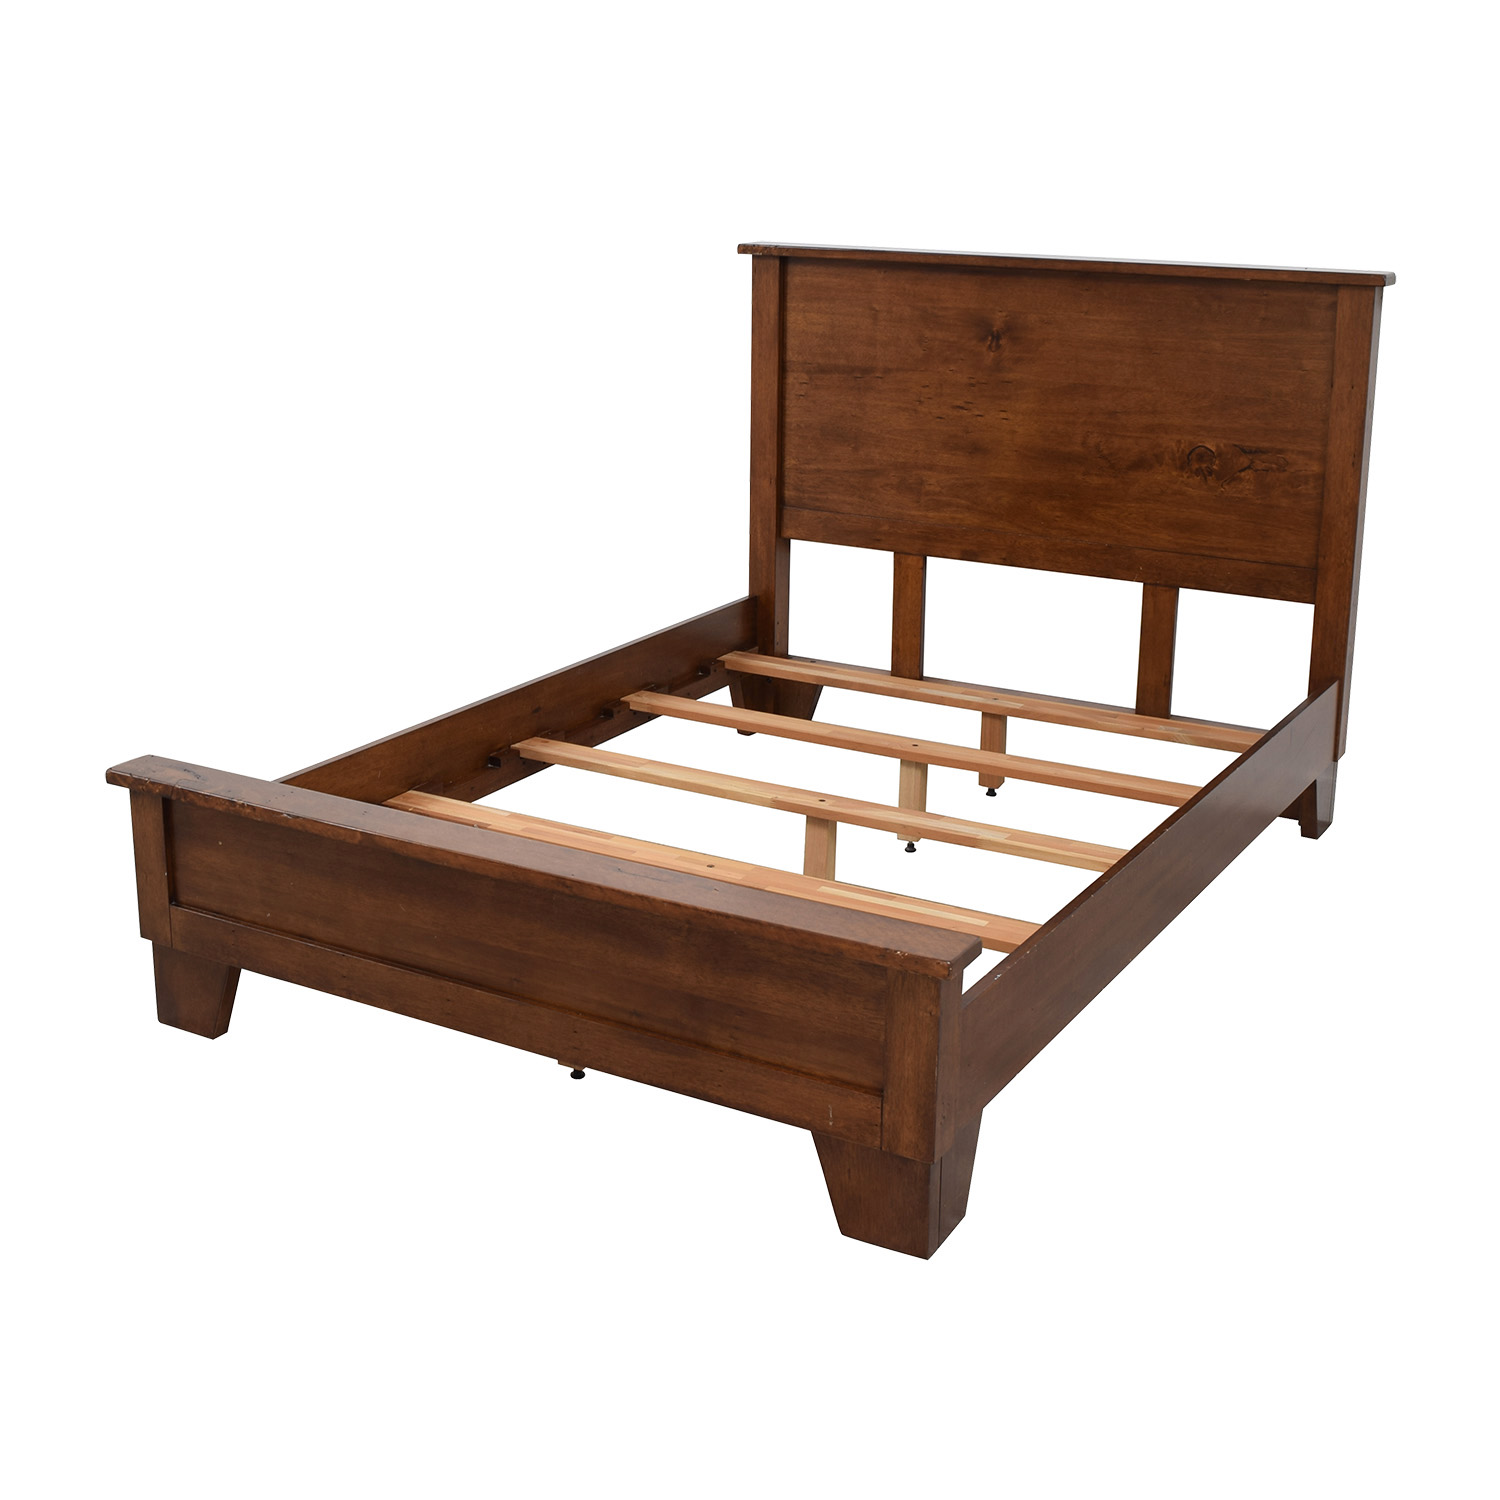 90% OFF - Pottery Barn Pottery Barn Sumatra Wood Full Bed Frame / Beds